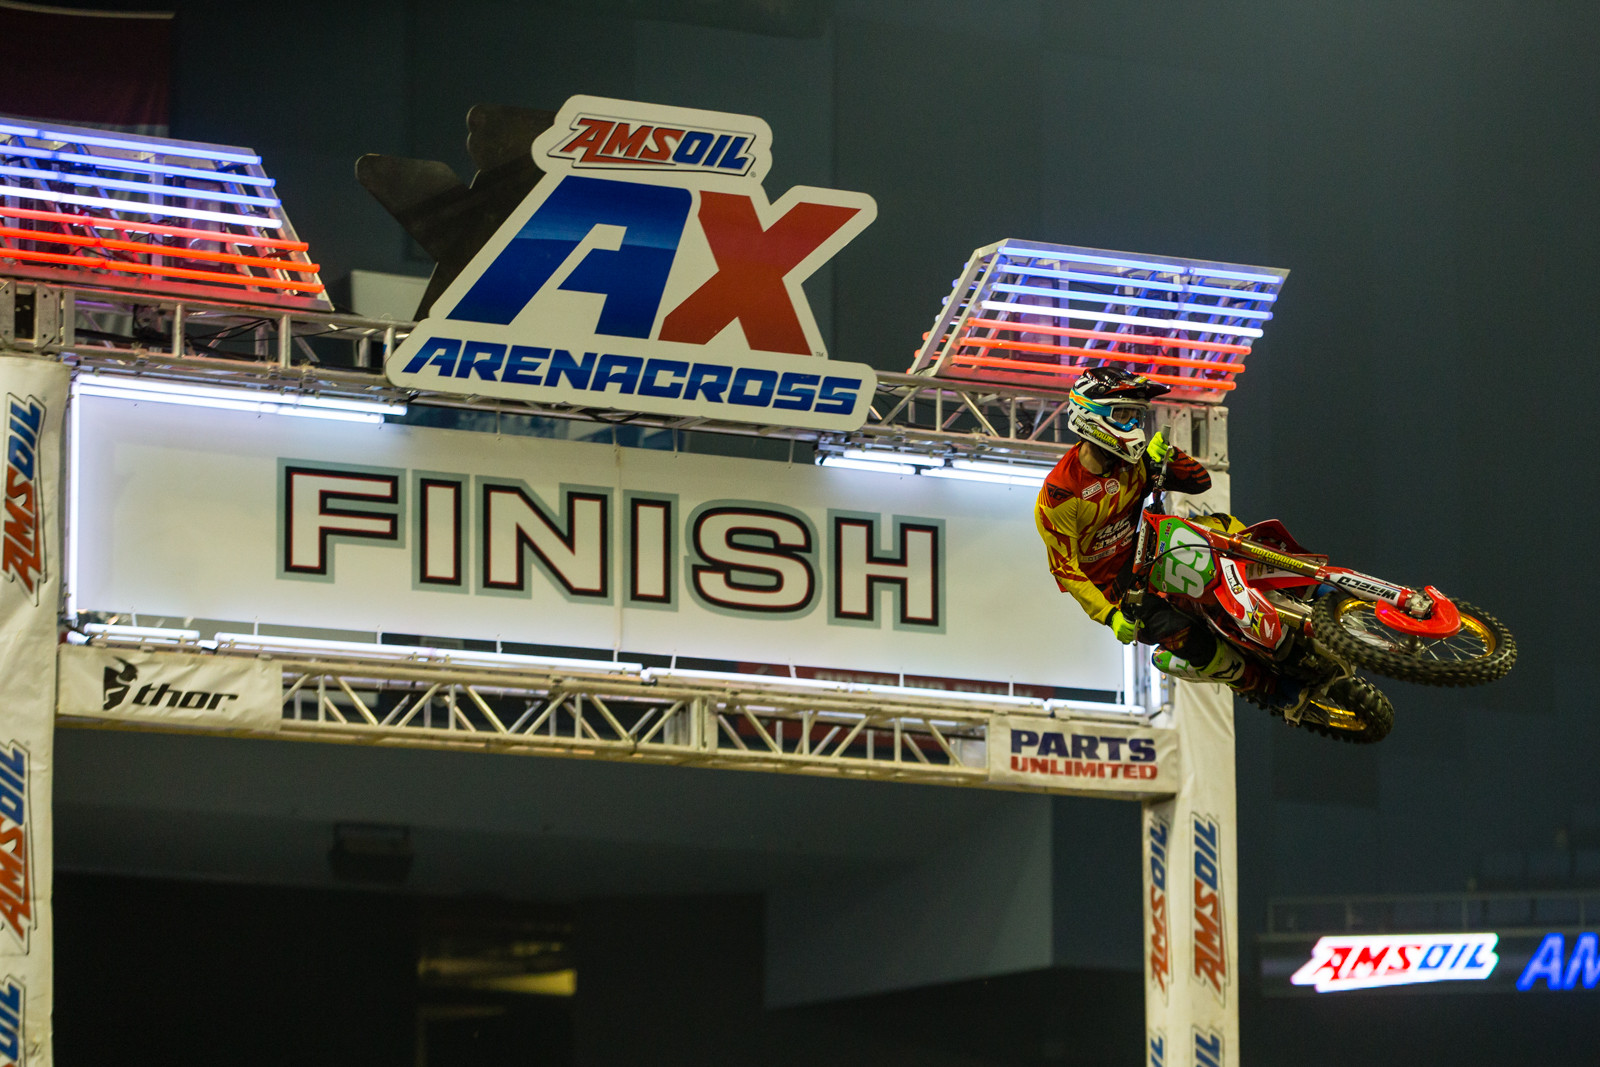 Opening Ceremonies  - Photo Gallery: Ontario Arenacross - Saturday Night - Motocross Pictures - Vital MX